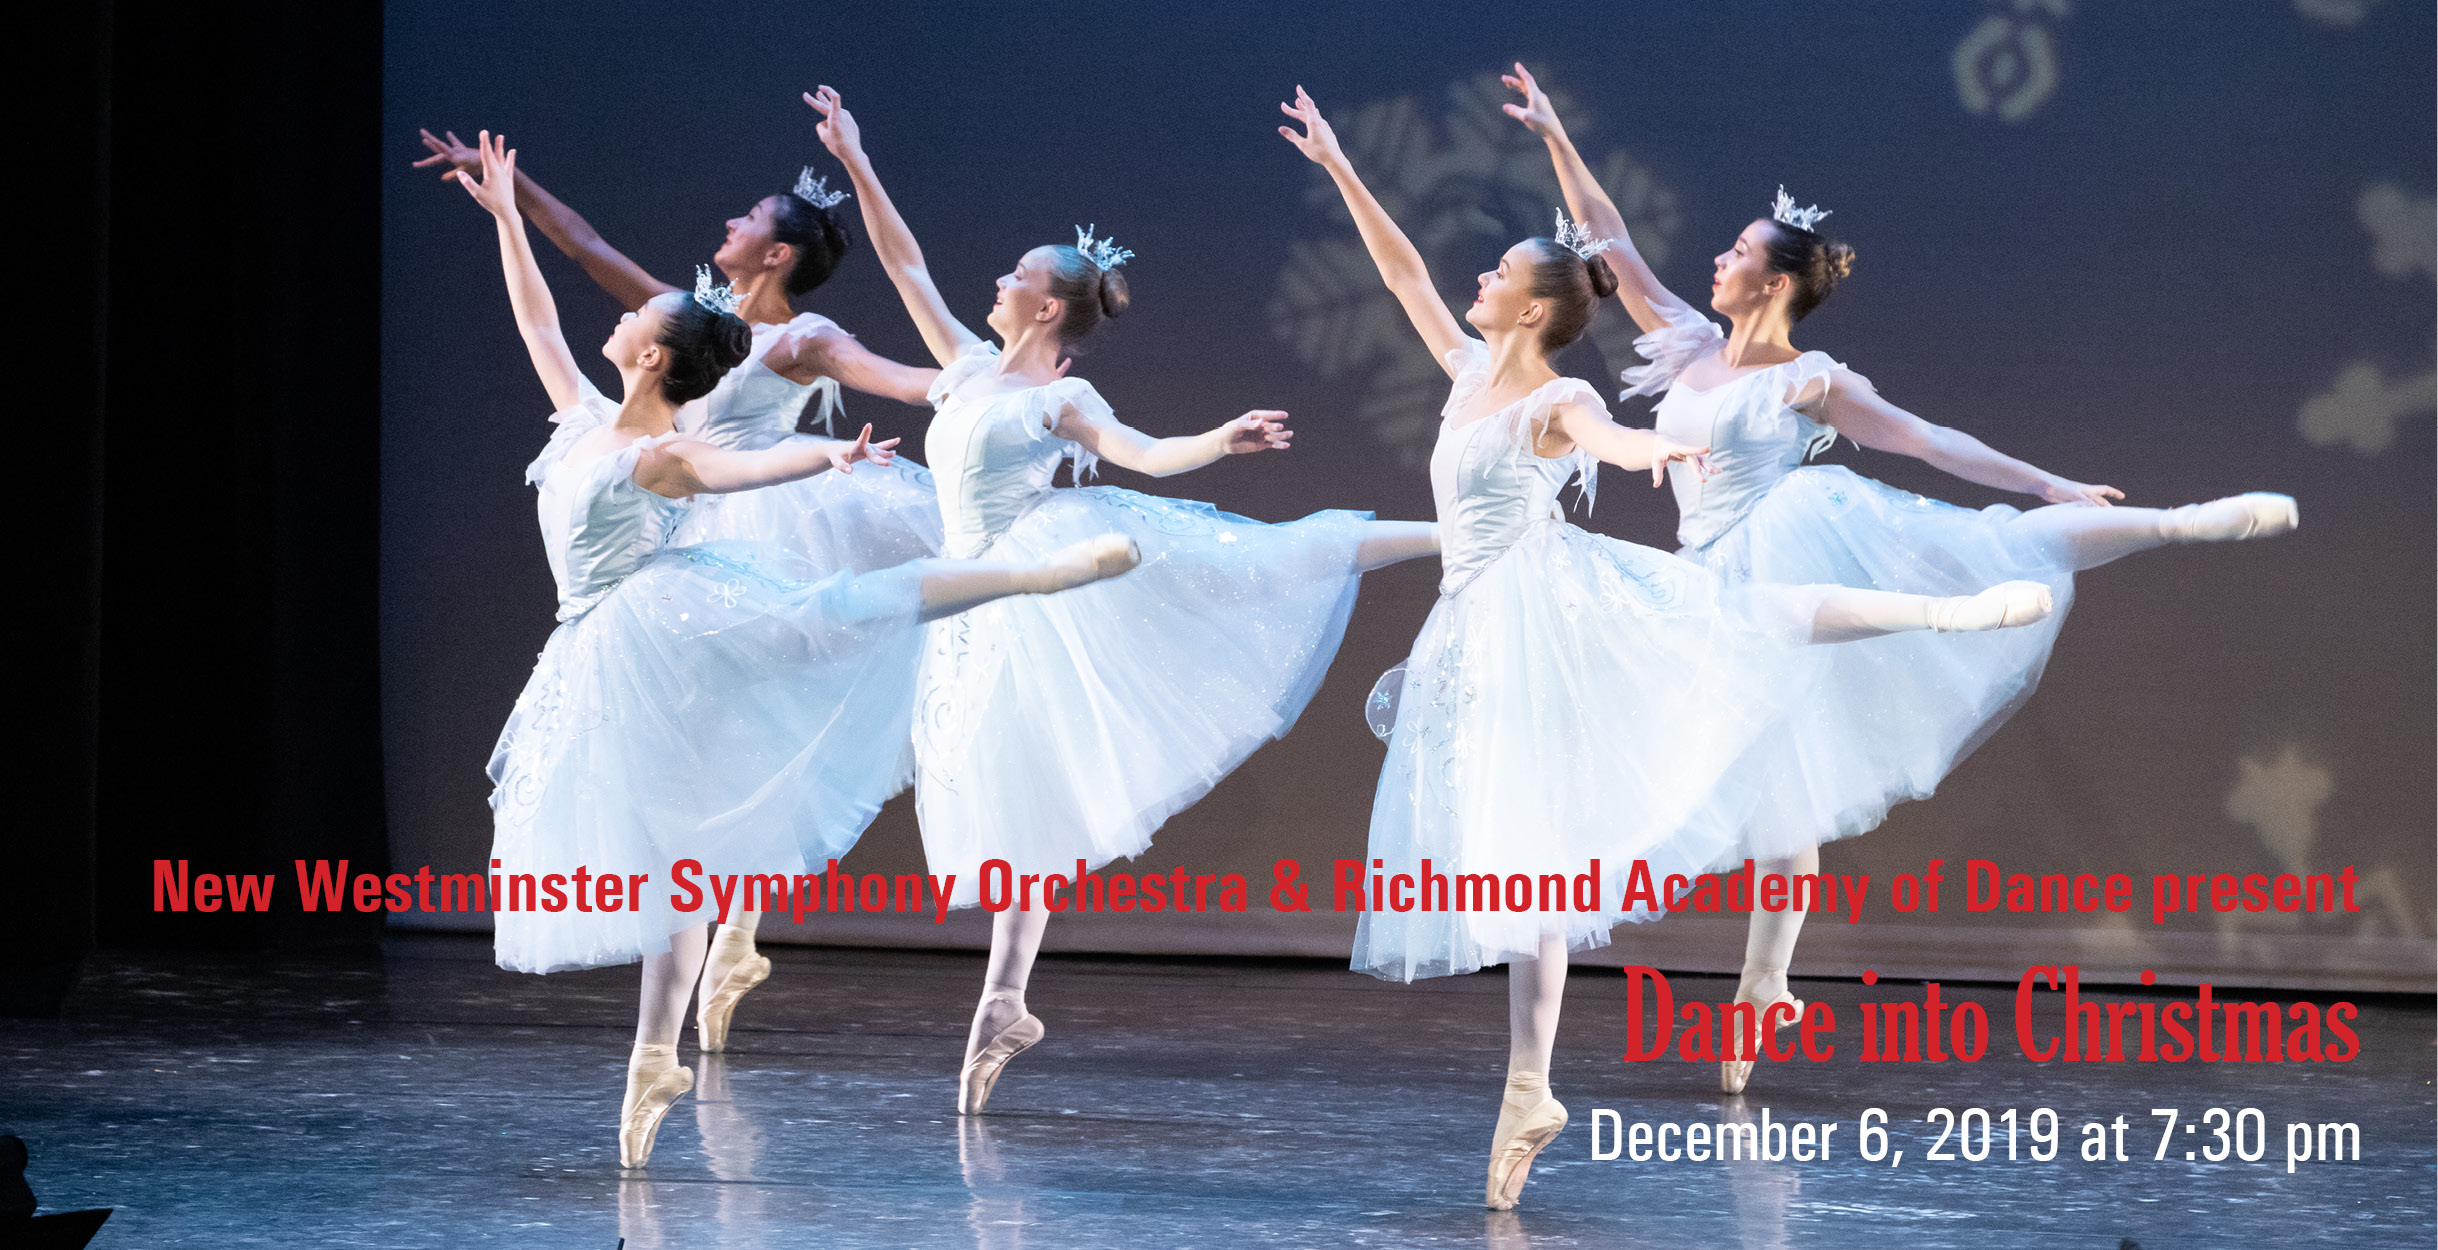 NWSO and RAD present Dance into Christmas